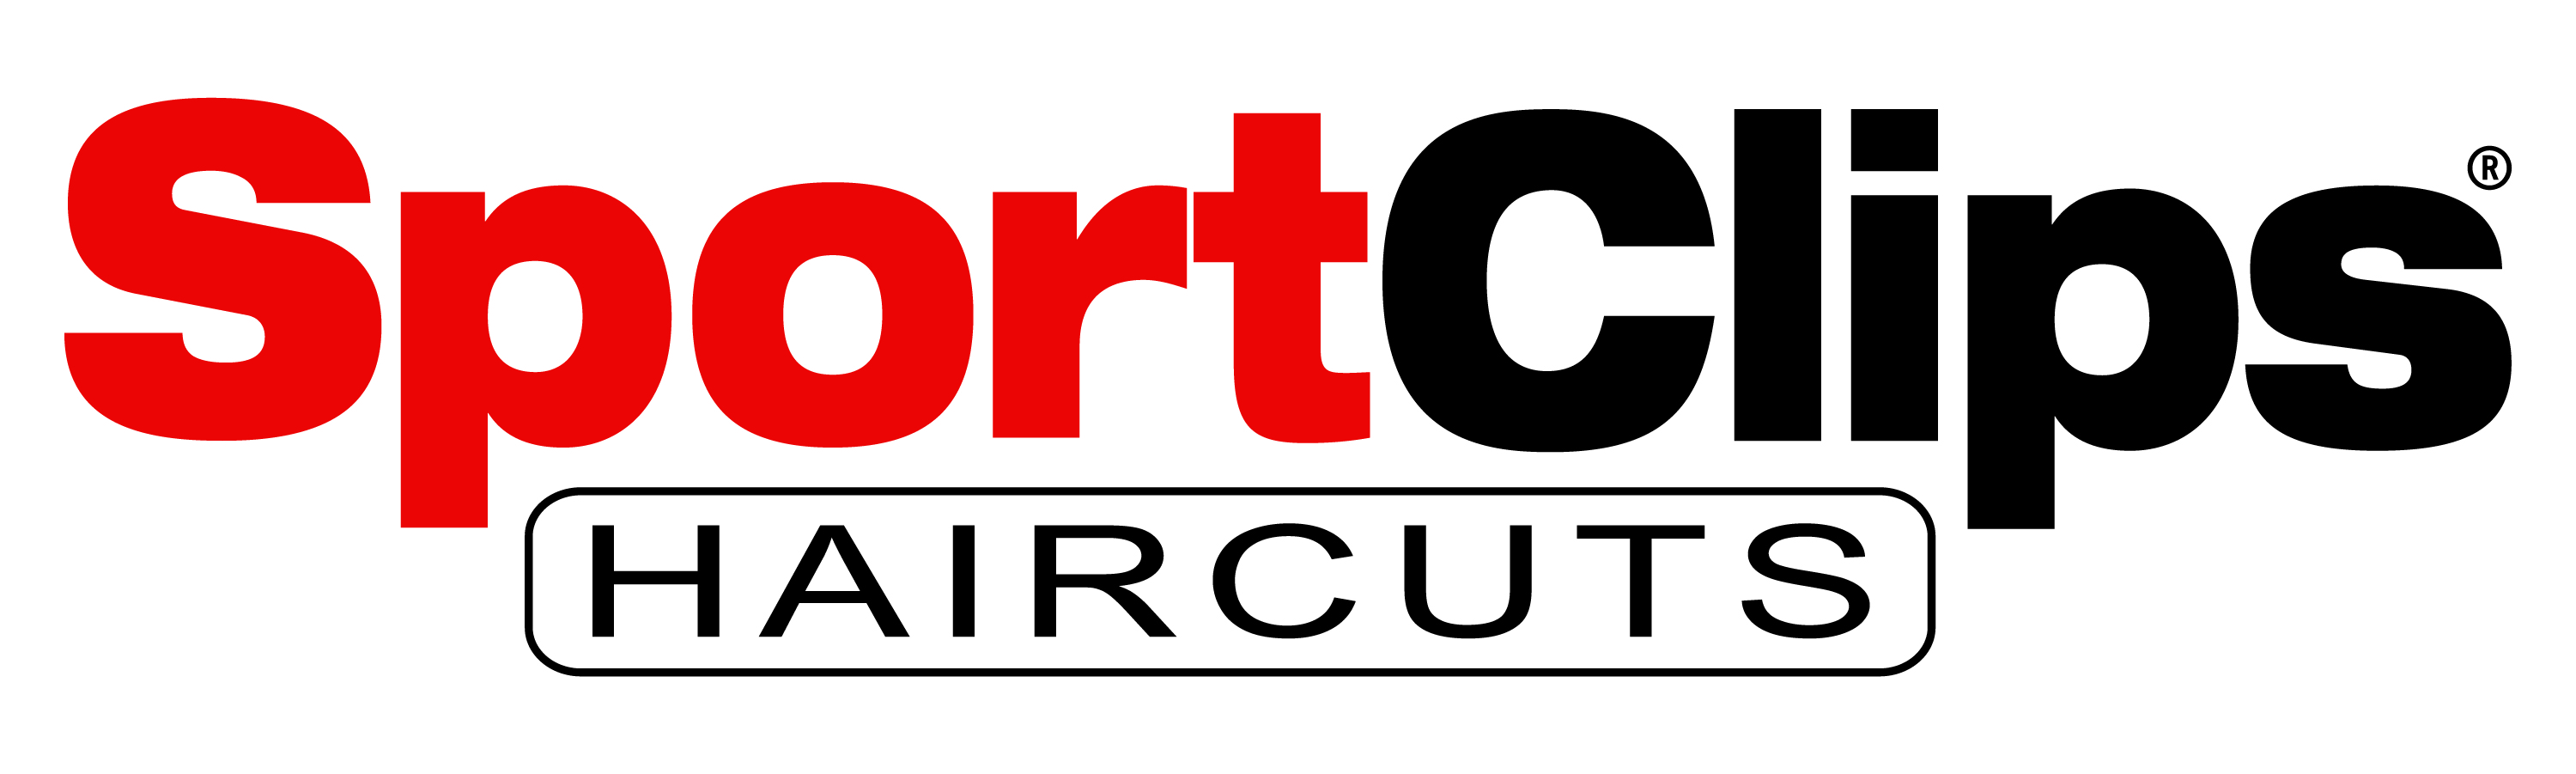 Sport Clips Haircuts Kicks Off 2019 With Announcement Of Leadership Additions And Promotions